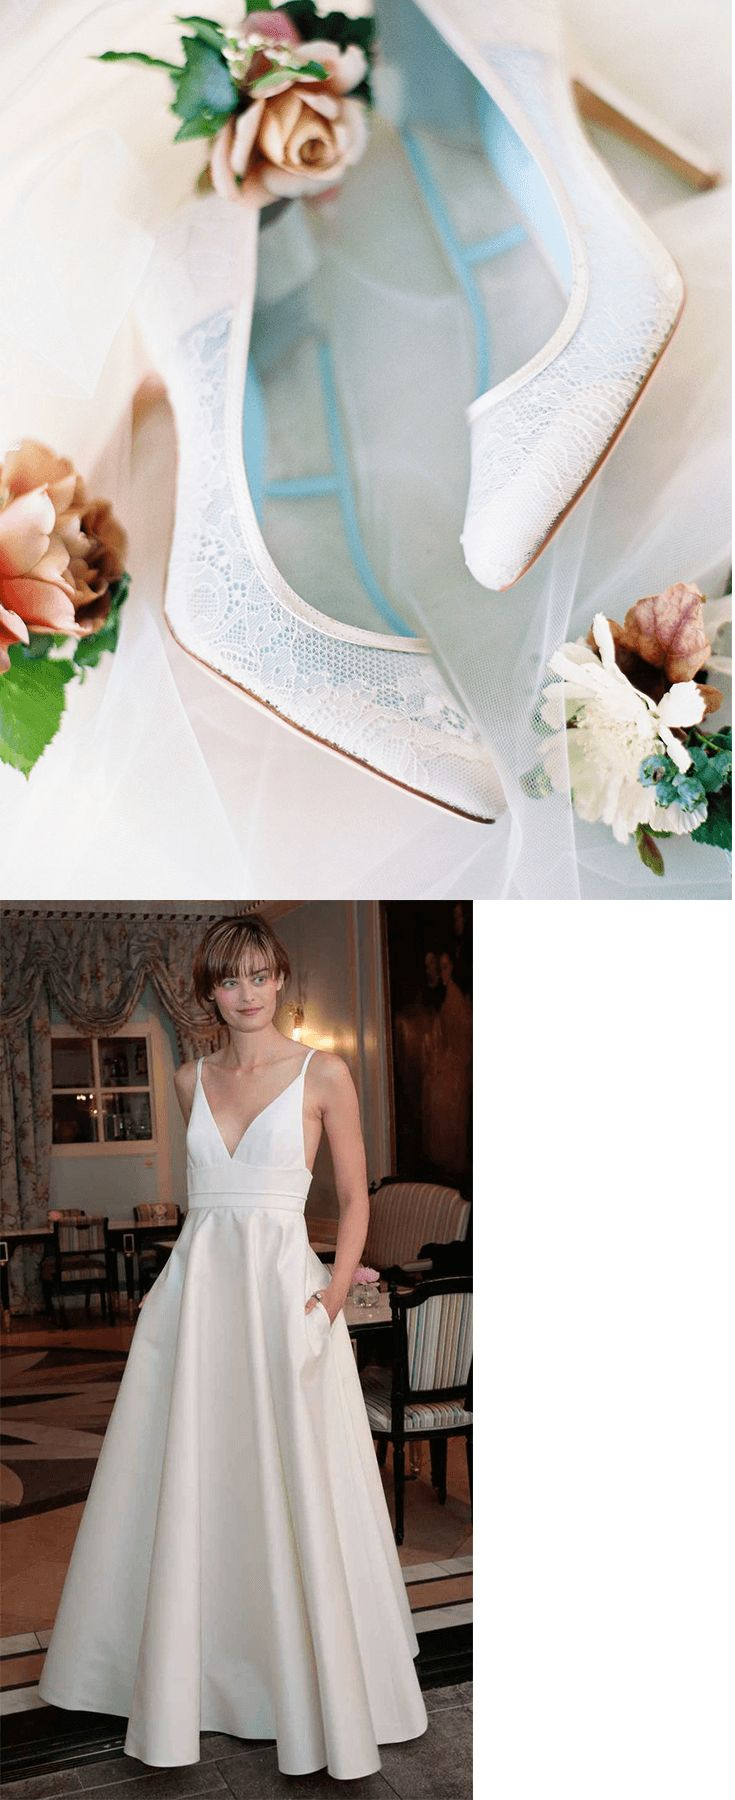 Next on What would Meghan Markle wear for her royal wedding is a simple, classic and chic Delphine Manivel ivory silk wedding dress. Comes with hidden side pockets for brides who are practical and a simple sweetheart cut. Pair with Bella Belle comfortable wedding heel, Millie. A classic white lace closed toe wedding shoe for the ultimate feminine touch with heavy padding for all day comfort.   Photography by Shannon Elizabeth.